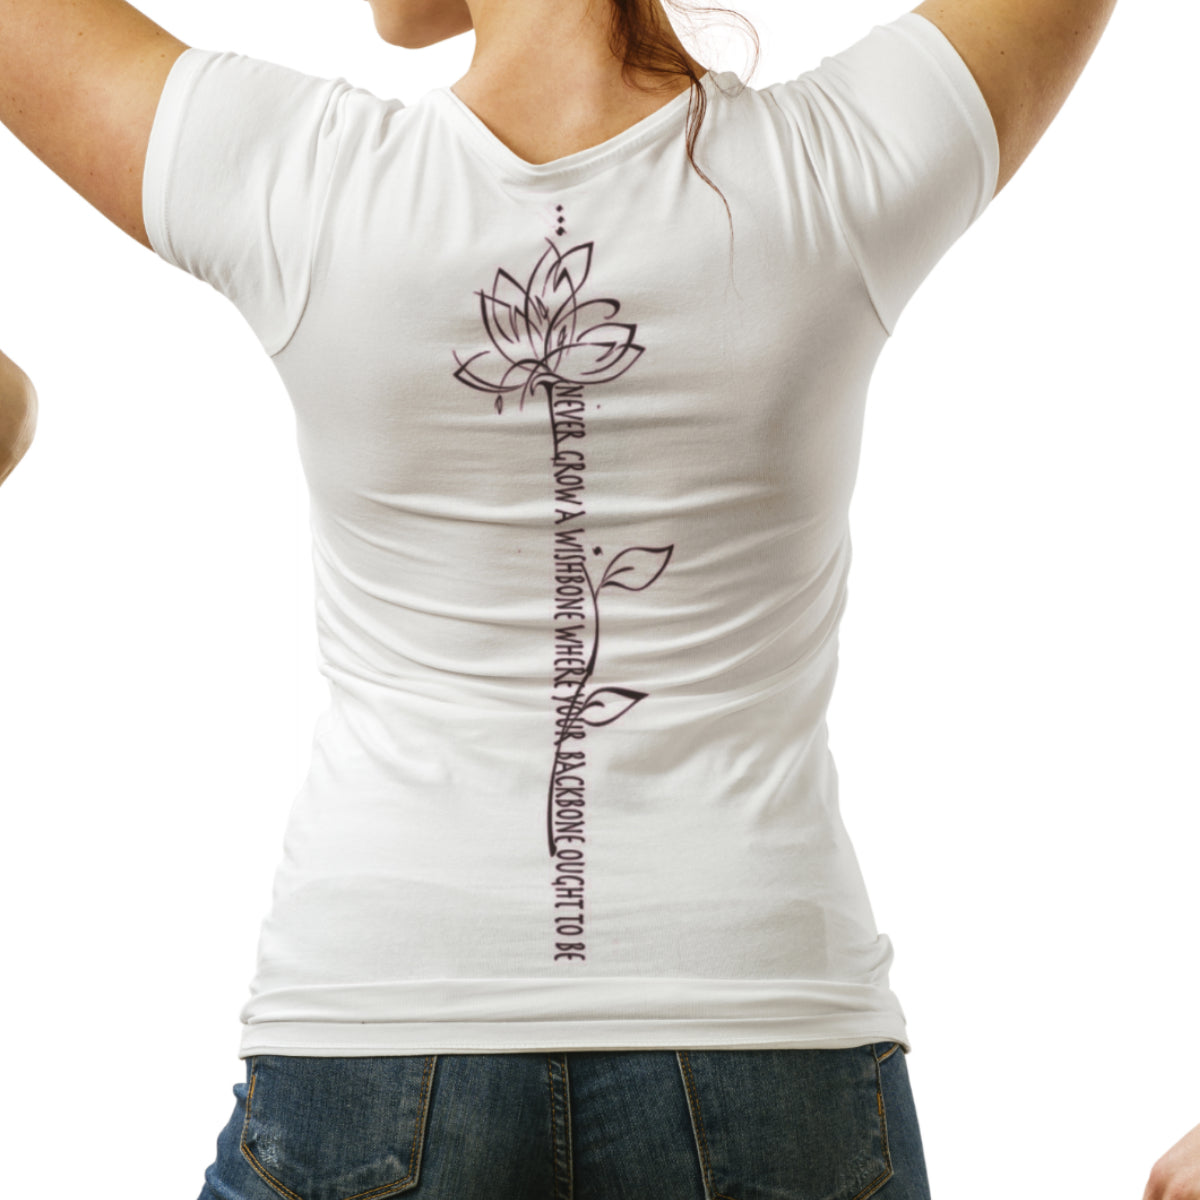 Backbone - V neck Women's cut t-shirt